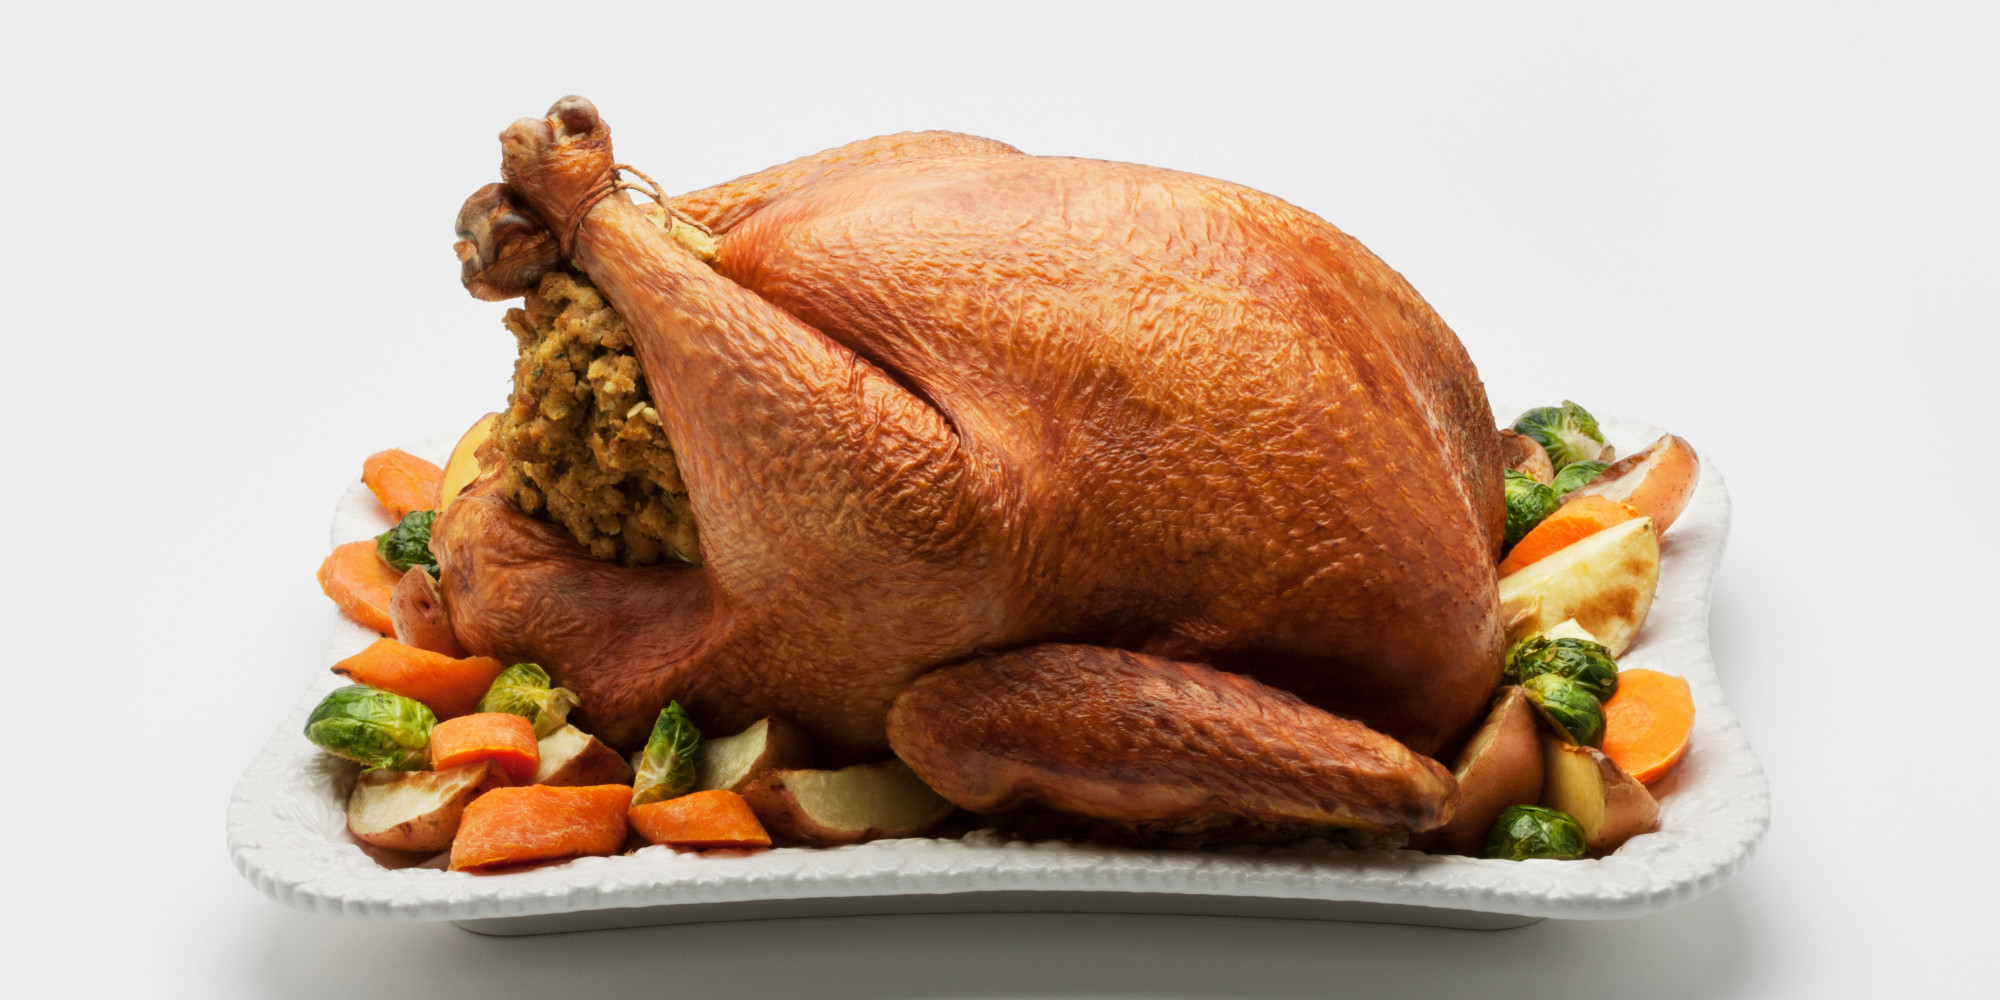 Turkey For Thanksgiving  Tryptophan Making You Sleepy Is A Big Fat Lie